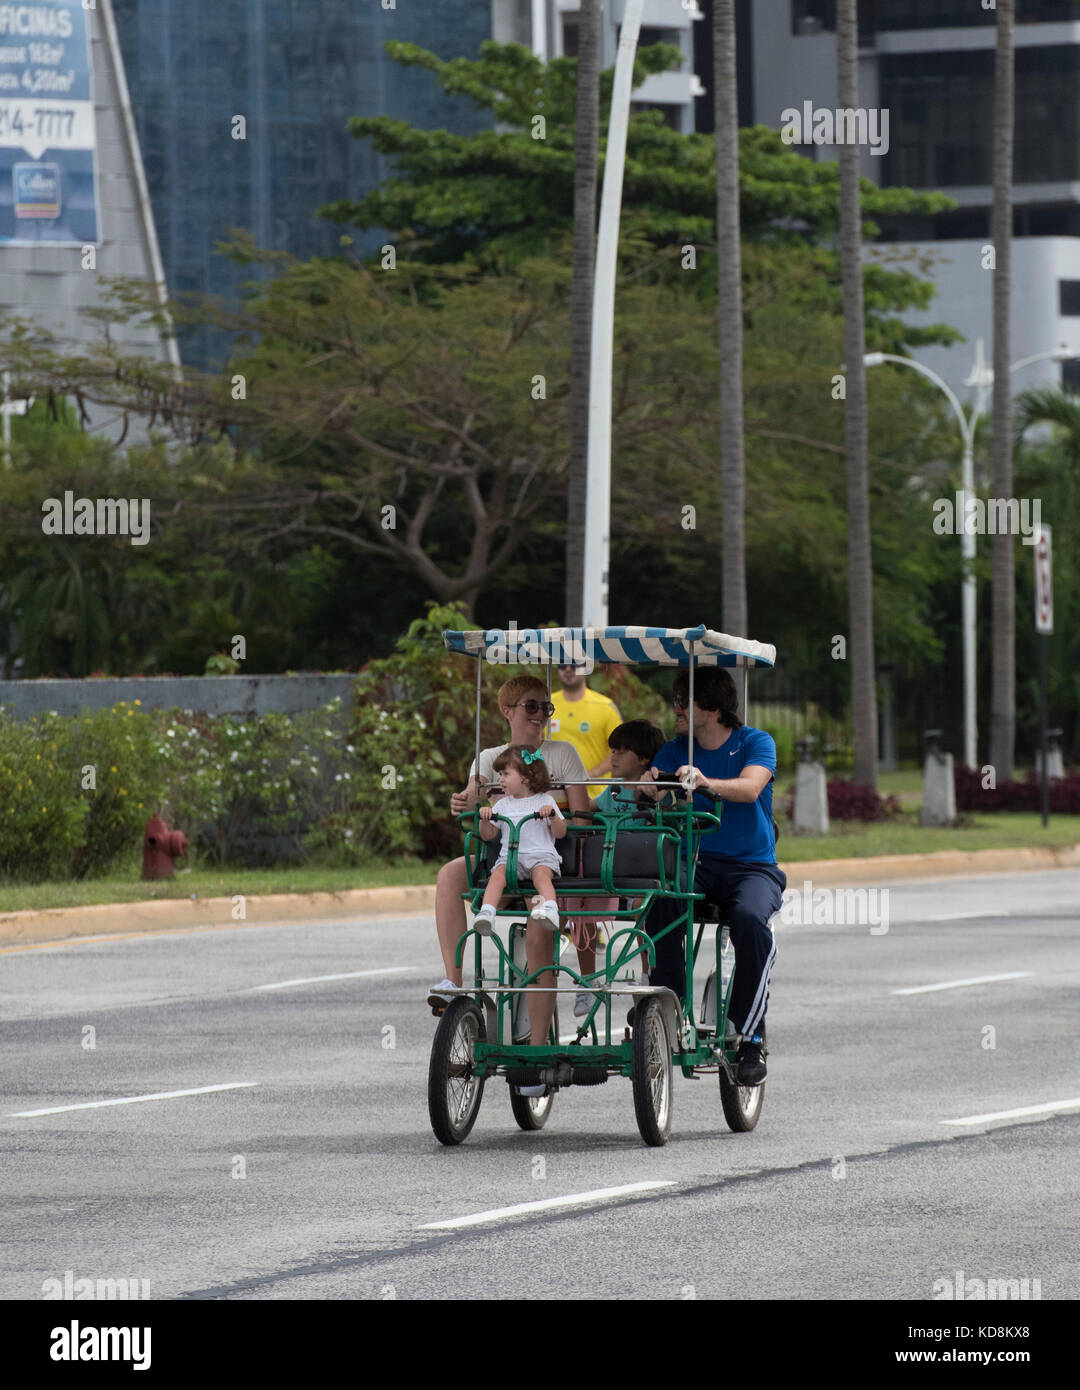 Family on a four wheel cycle traffic free area on Sunday in Panama City - Stock Image